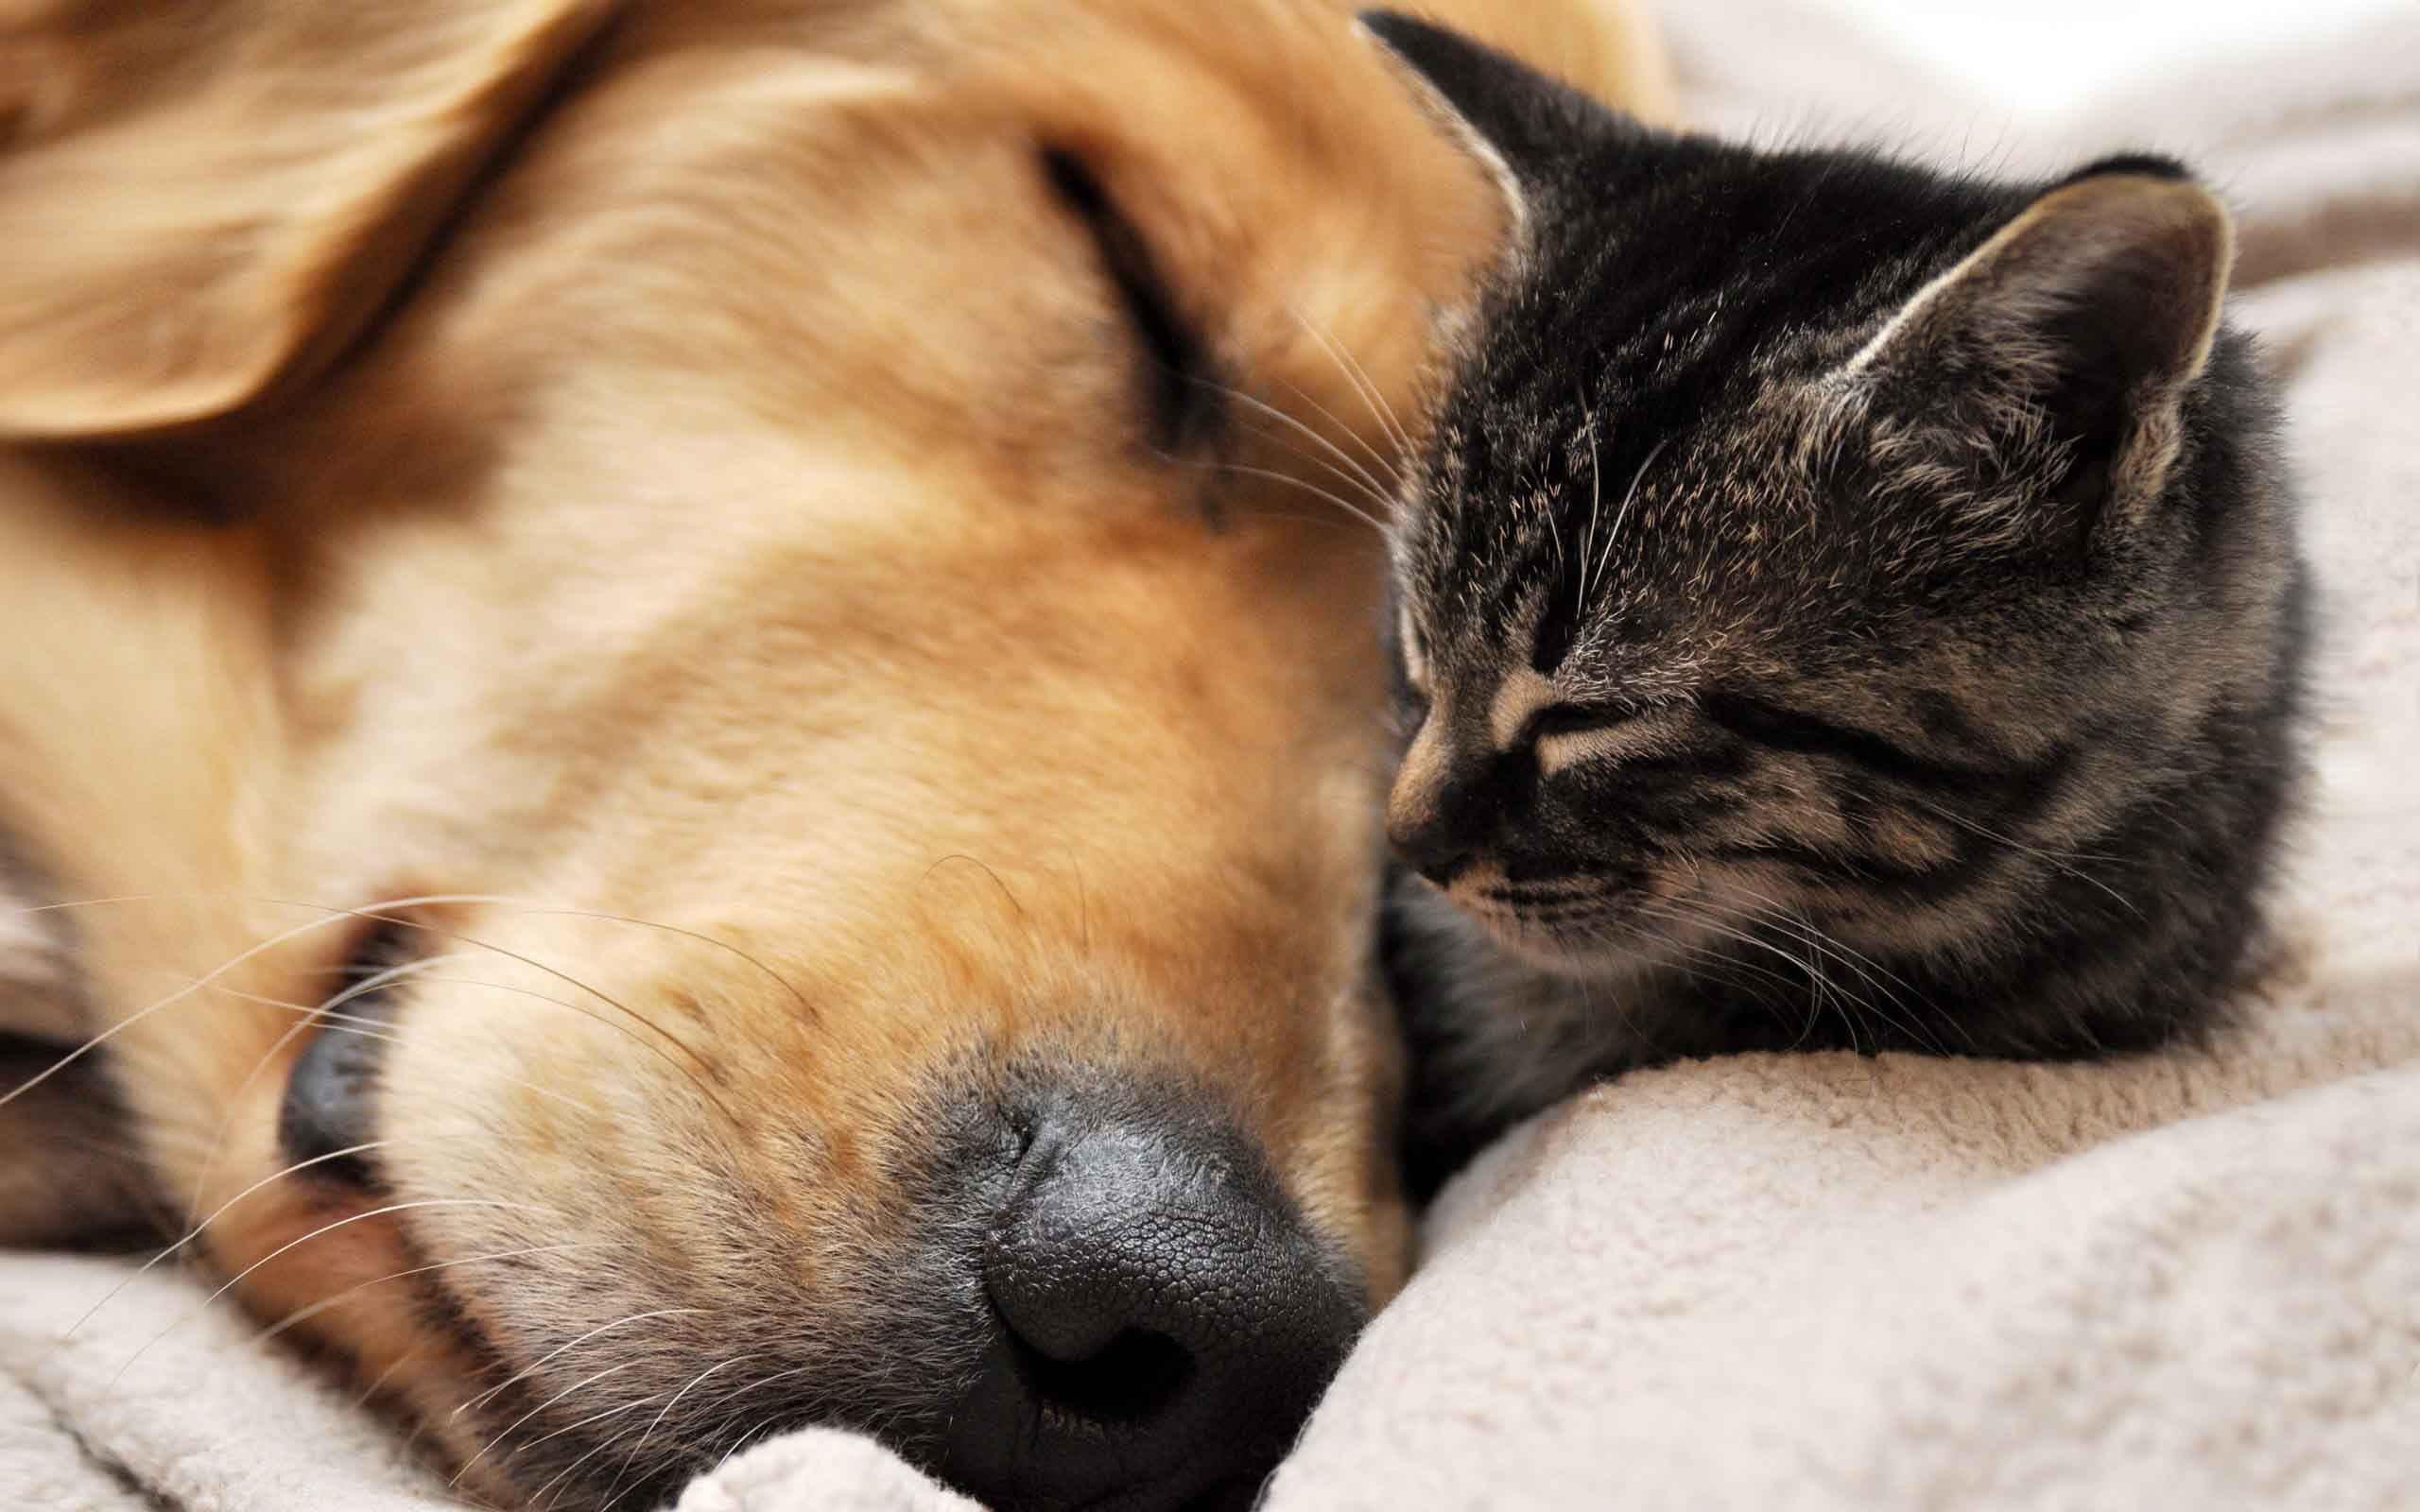 2560x1600 Cat and dog sleeping wallpapers and images - wallpapers, pictures .